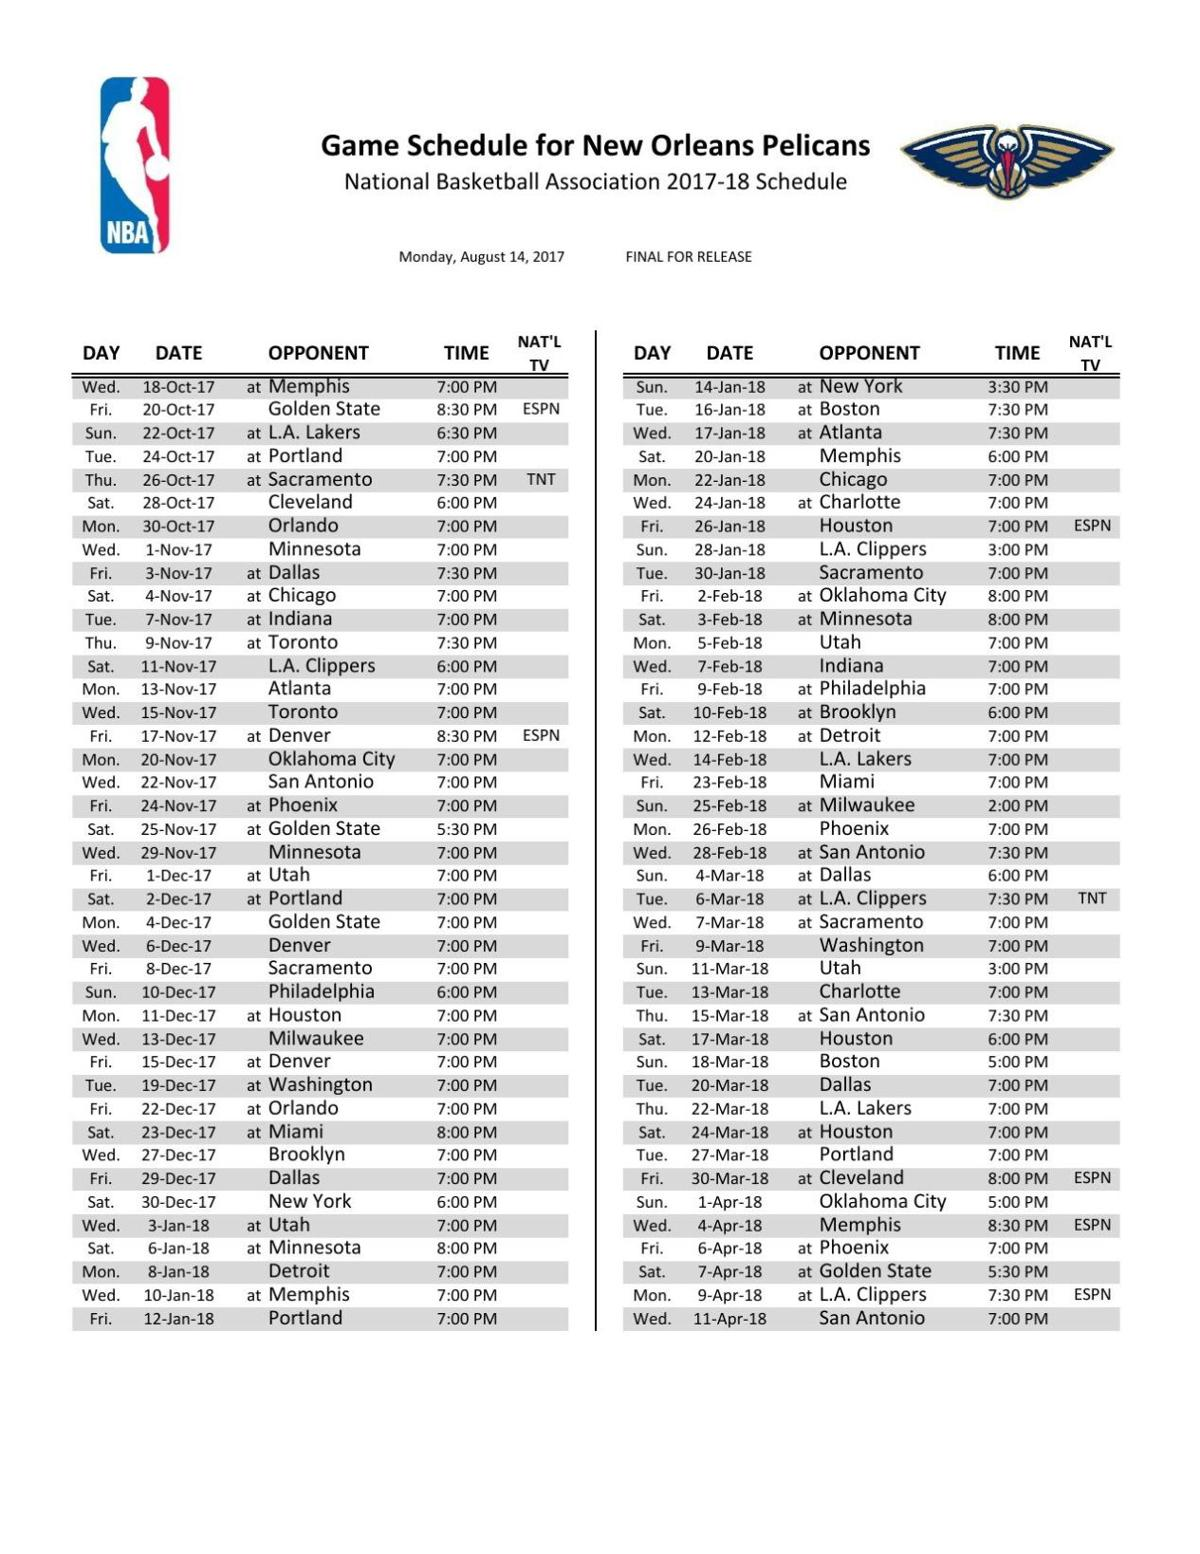 New Orleans Pelicans 2017-18 regular season schedule